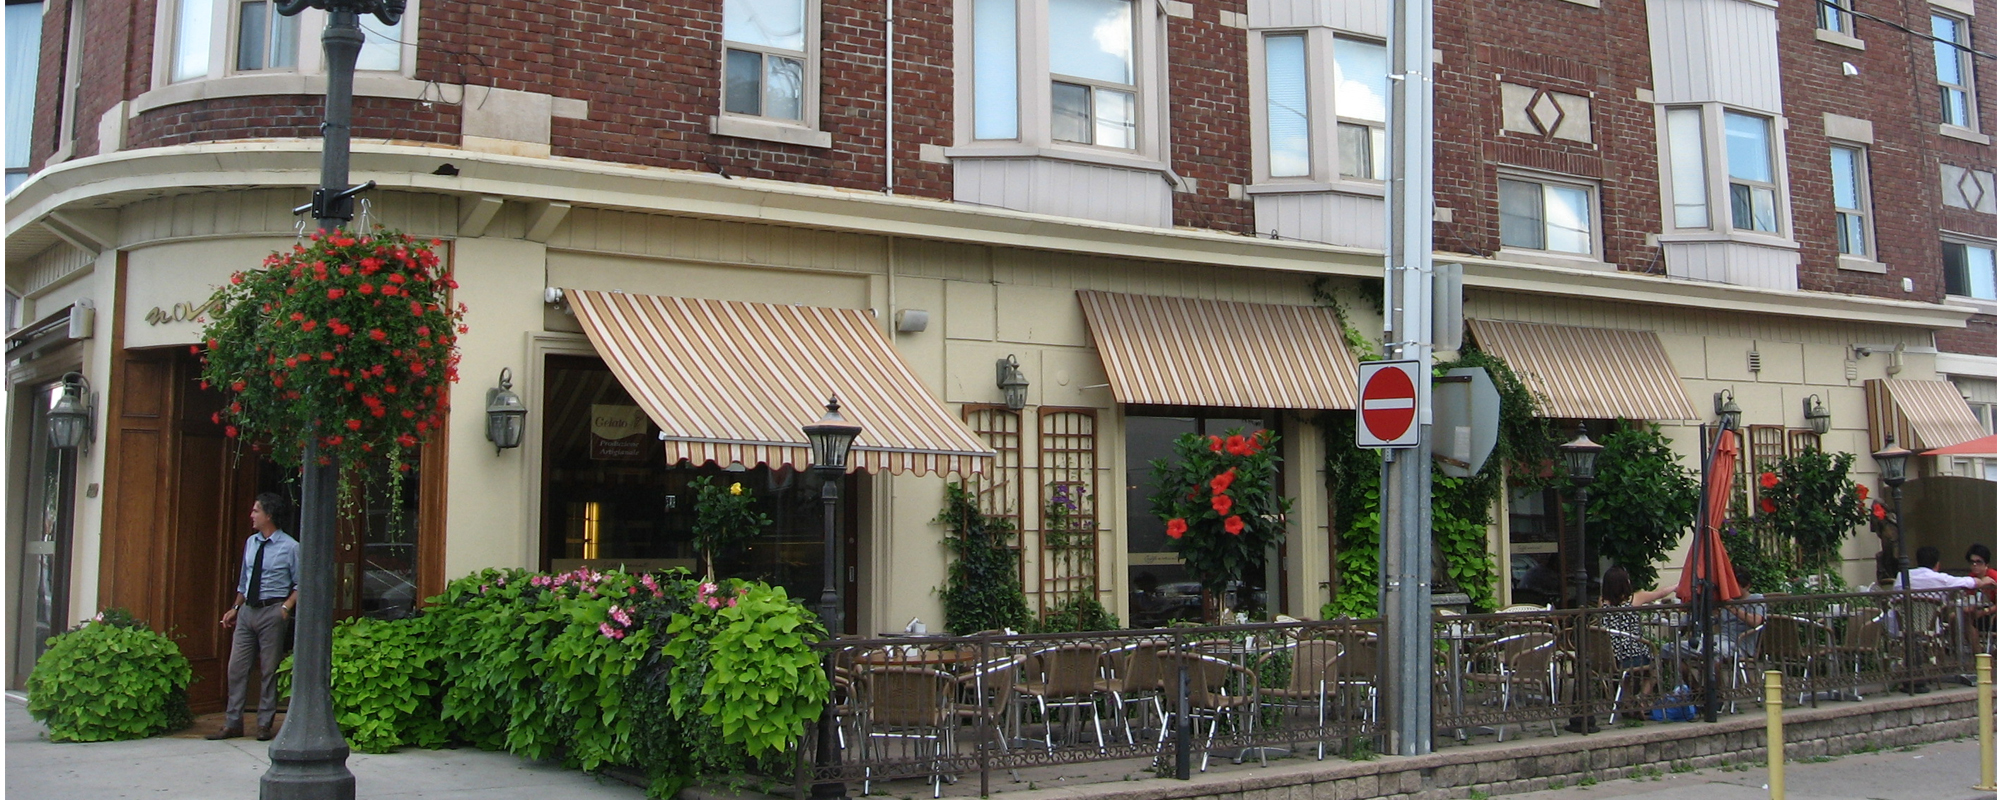 Toronto College - Little Italy Real Estate